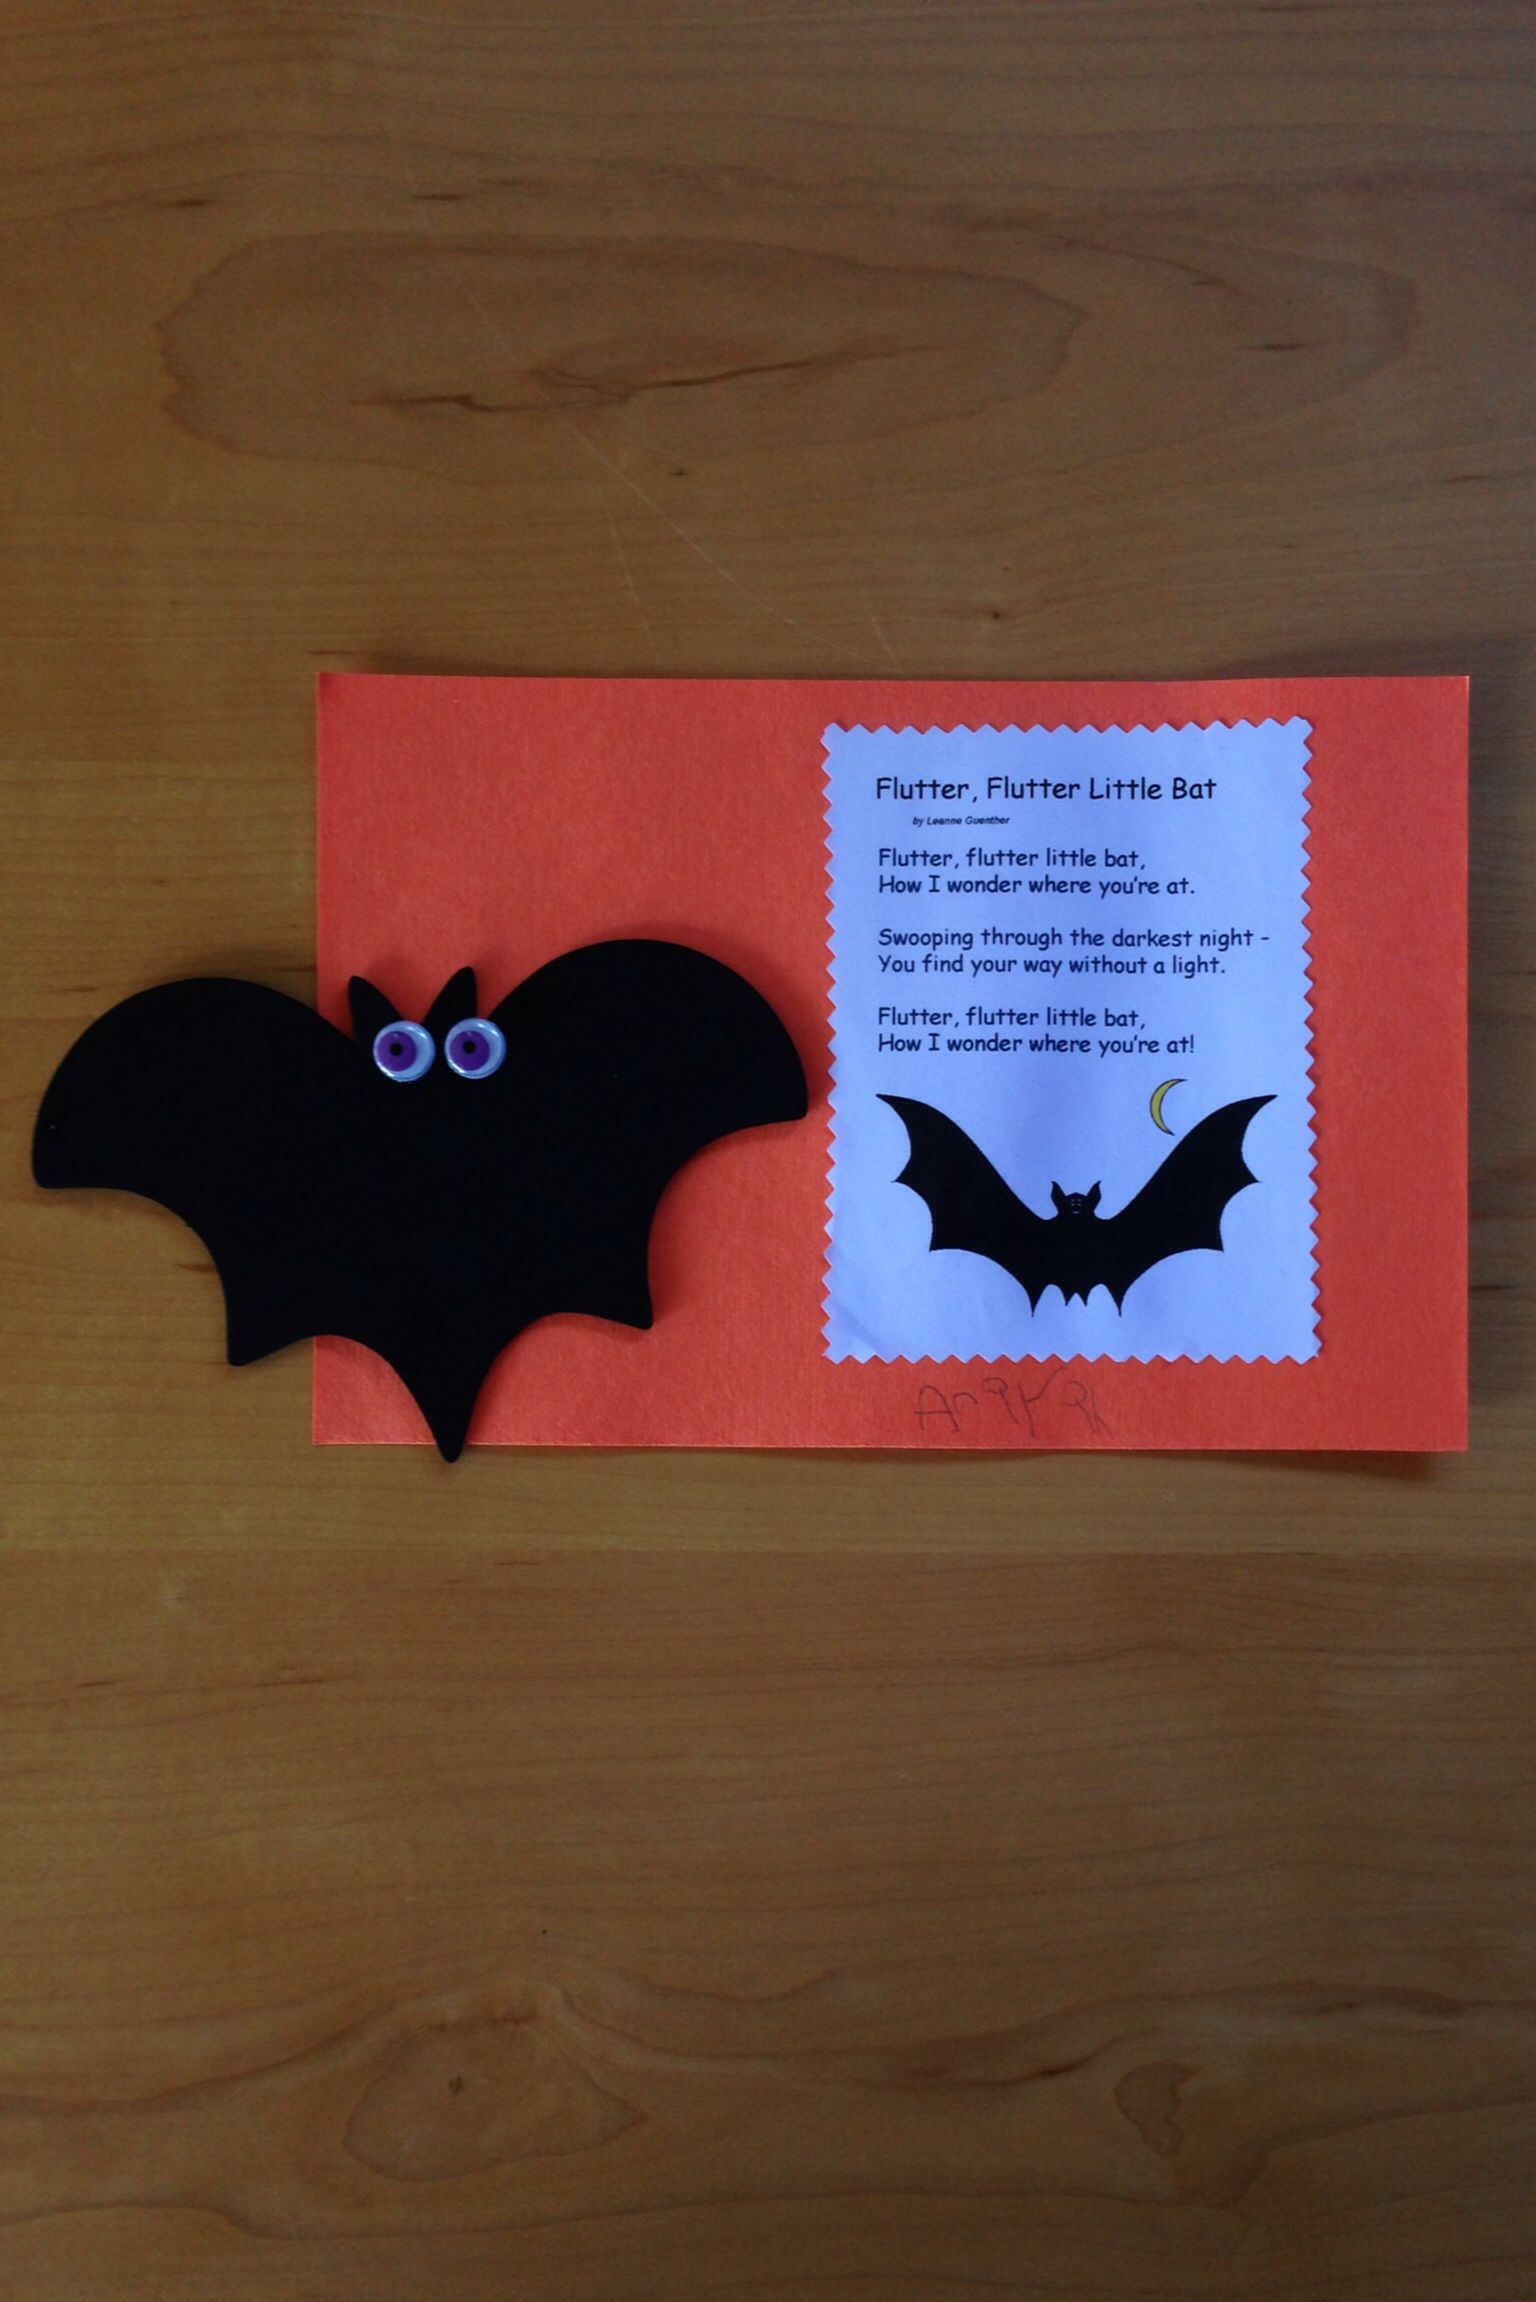 Preschool Bat Craft And Song Photo By Kathleen Intile